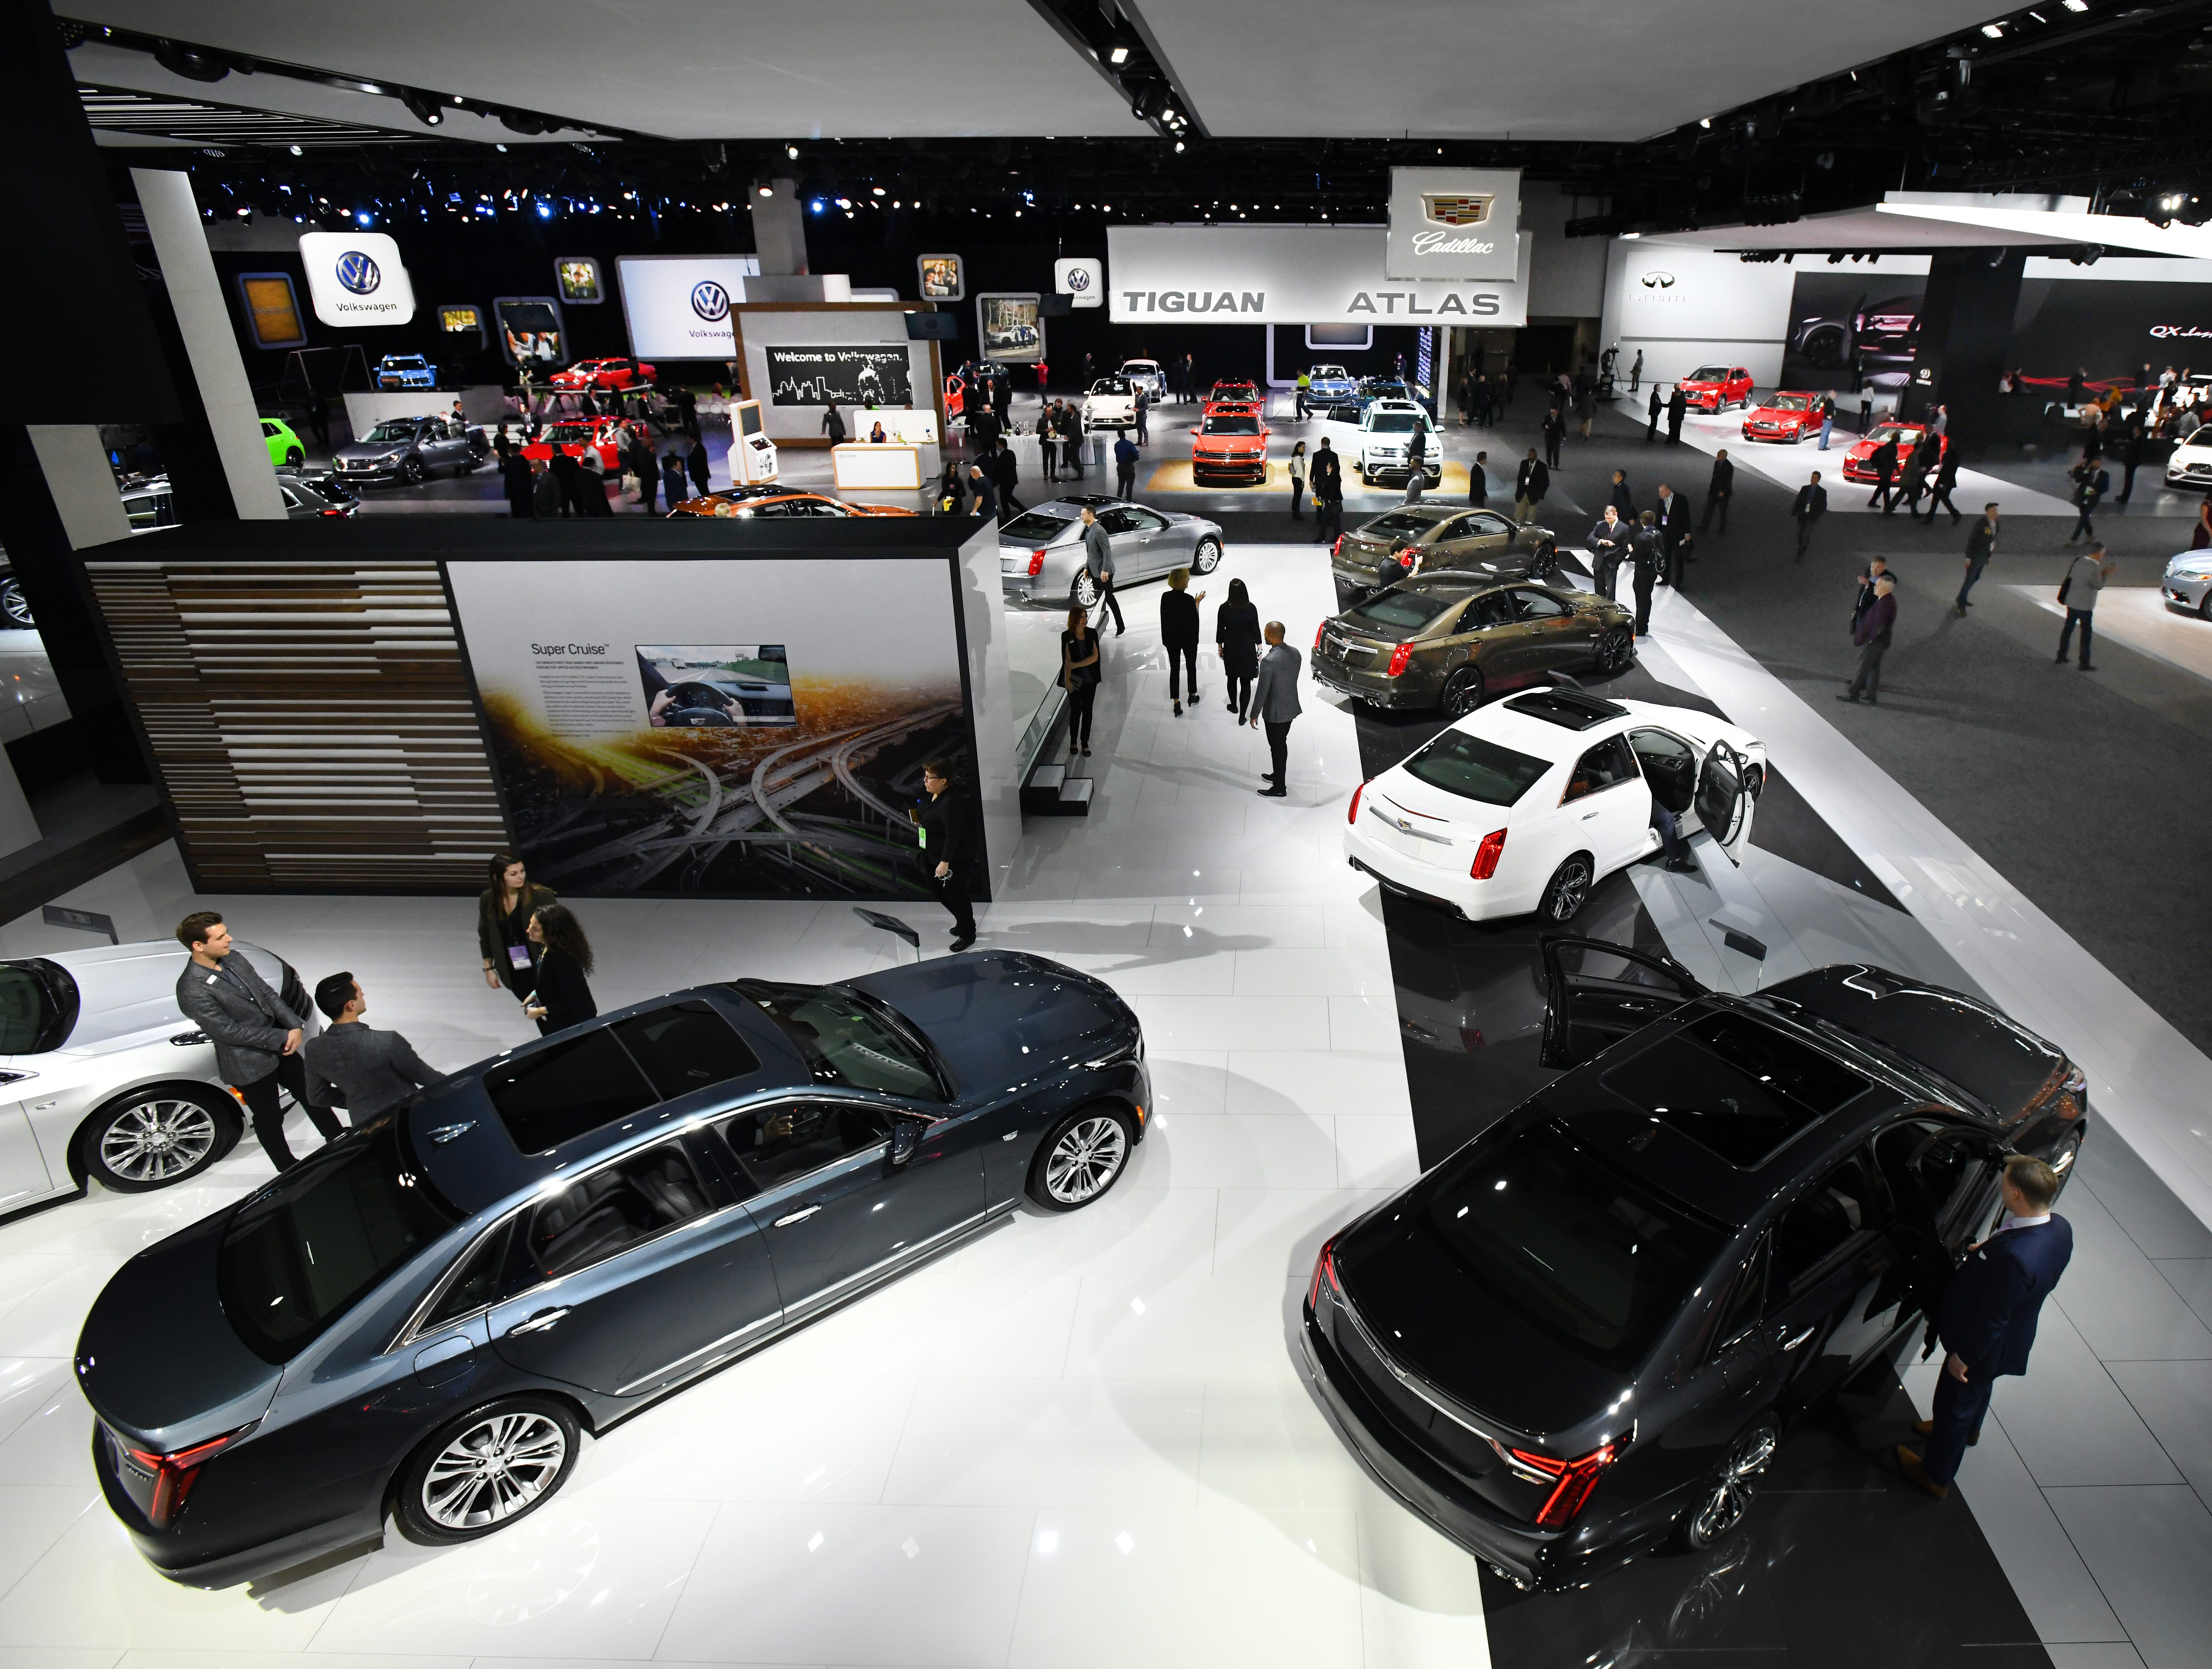 The Cadillac display area was not exactly teeming with activity on the normally frenetic media preview day at the North American International Auto Show in Detroit, Monday.